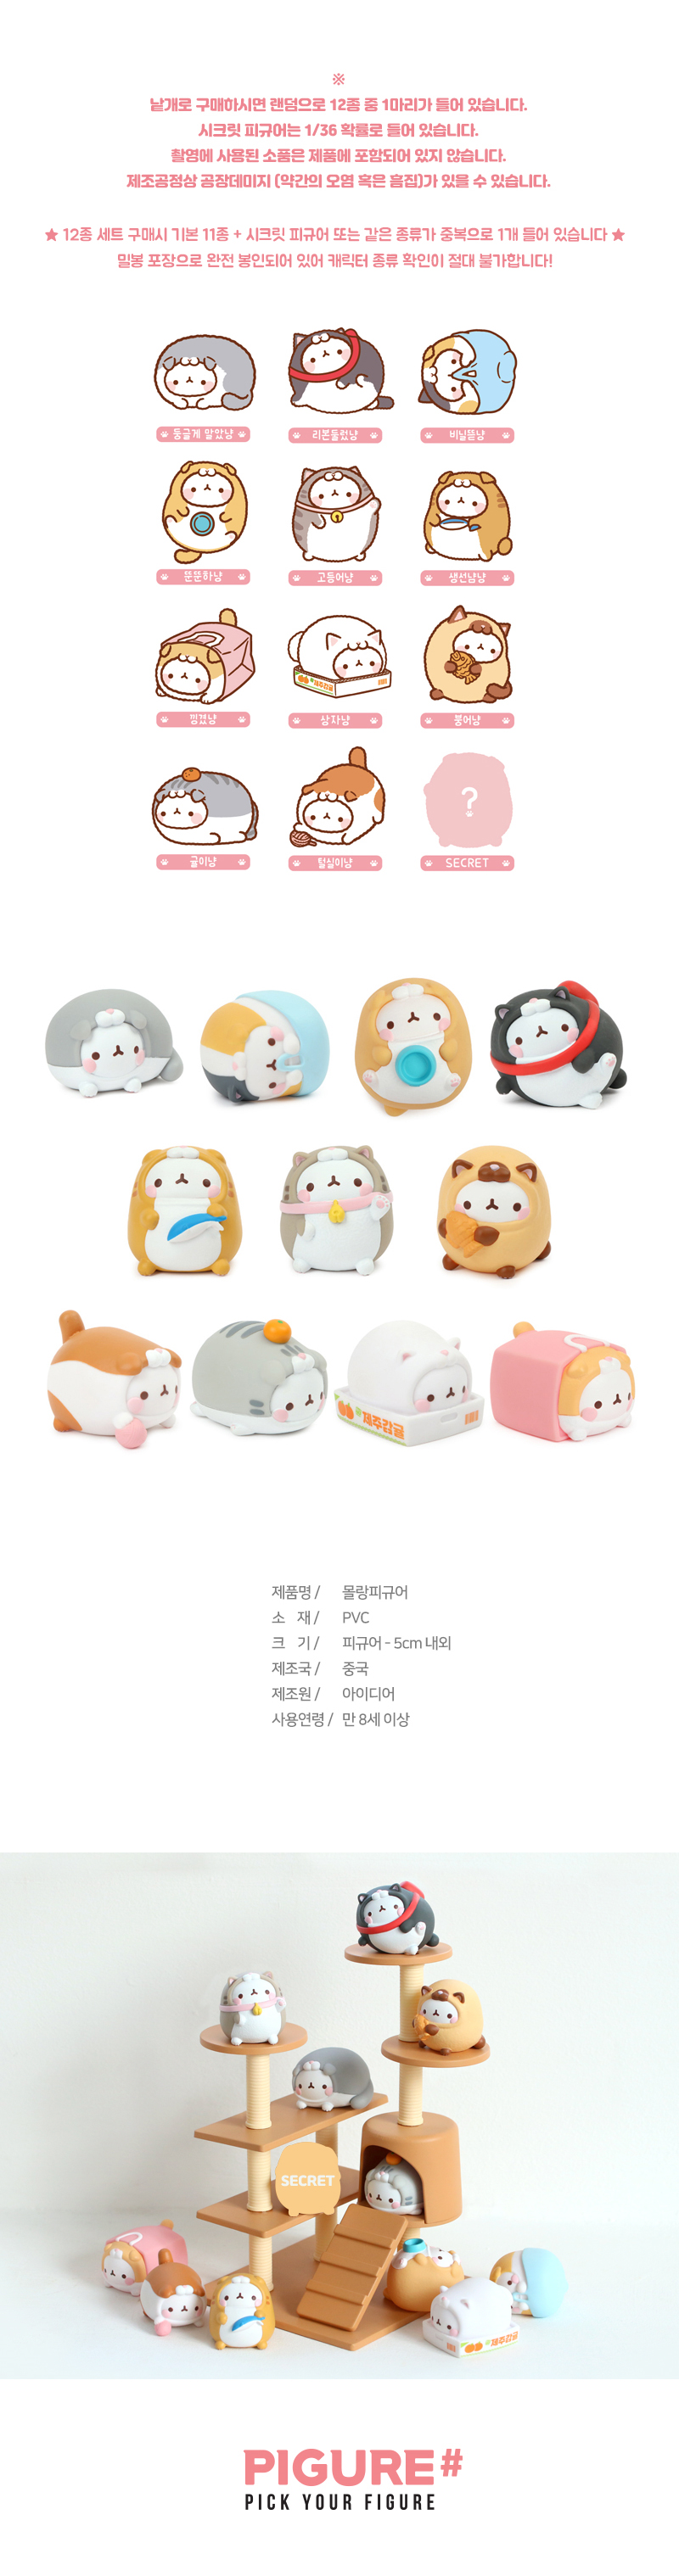 molang_figure_5th_05.jpg